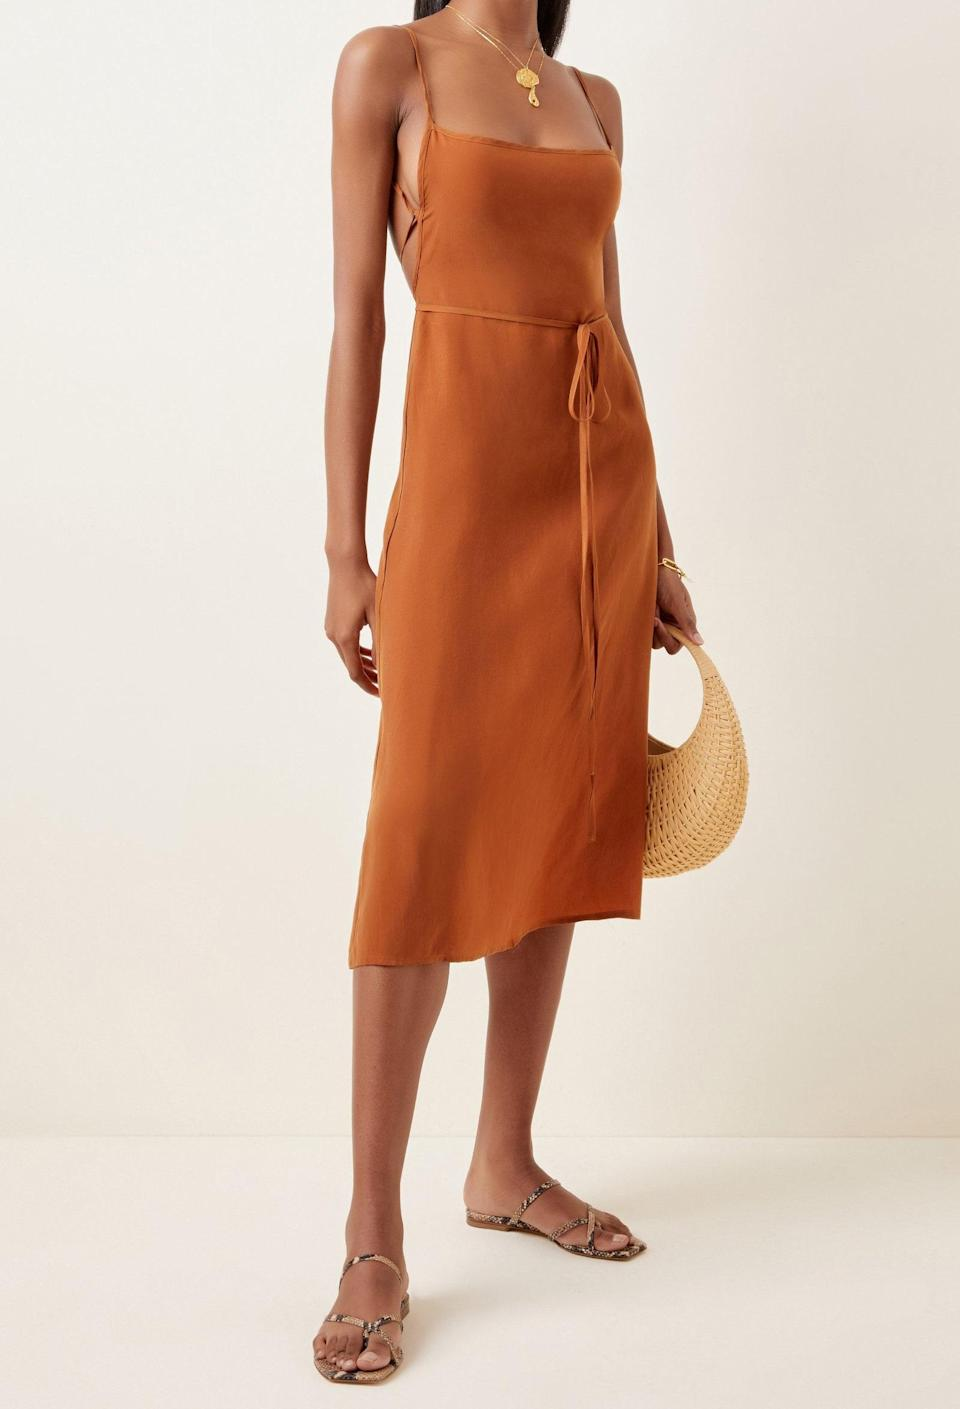 """Go from the reception to the beach in this open-backed washed cupro dress from resort brand Anemos. $345, Moda Operandi. <a href=""""https://www.modaoperandi.com/women/p/anemone/k-m-tie-midi-dress-in-rust-sandwashed-cupro/459536"""" rel=""""nofollow noopener"""" target=""""_blank"""" data-ylk=""""slk:Get it now!"""" class=""""link rapid-noclick-resp"""">Get it now!</a>"""